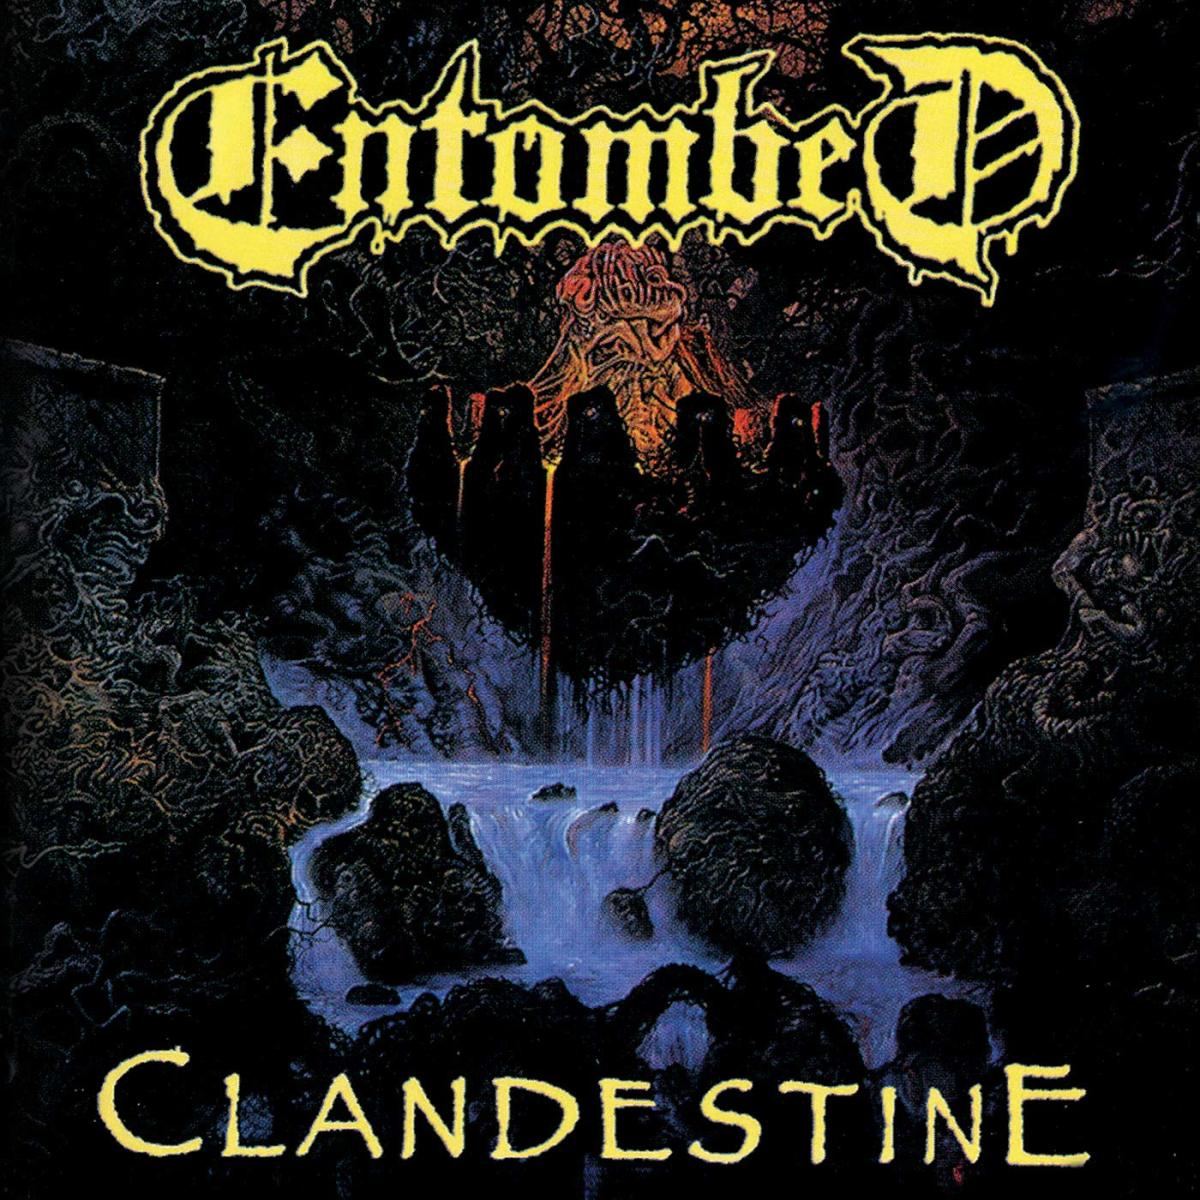 album-review-clandestine-by-entombed